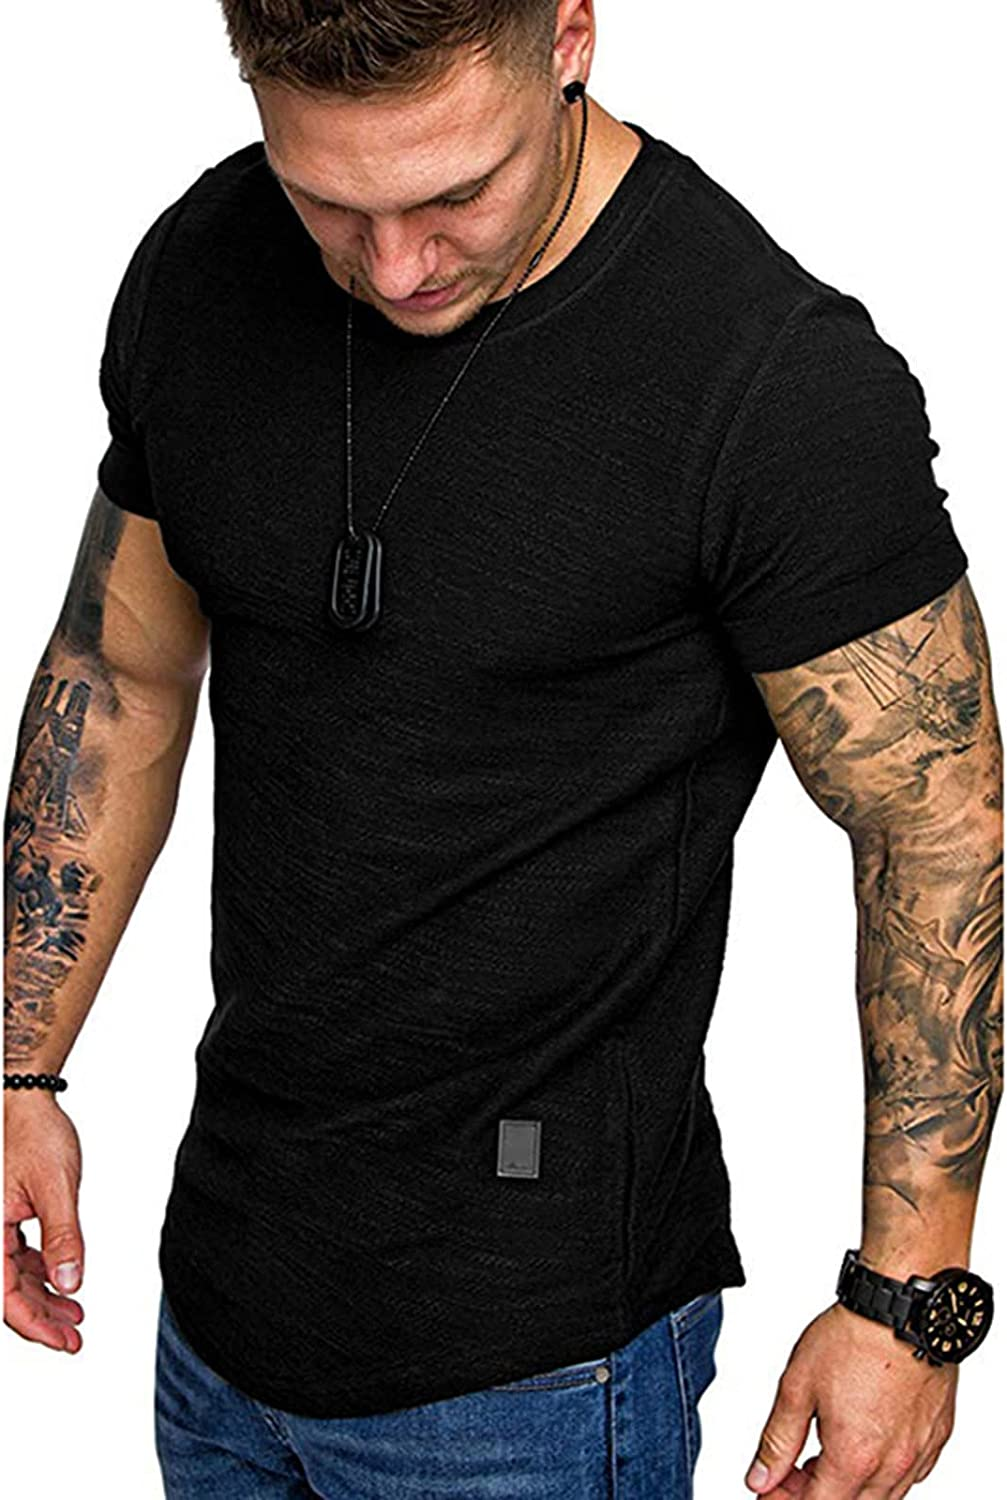 FUNEY Fashion Mens T Shirt Short Sleeve V Neck Muscle Gym Workout Athletic Shirt Classic Jersey Cotton Tee Shirt Top